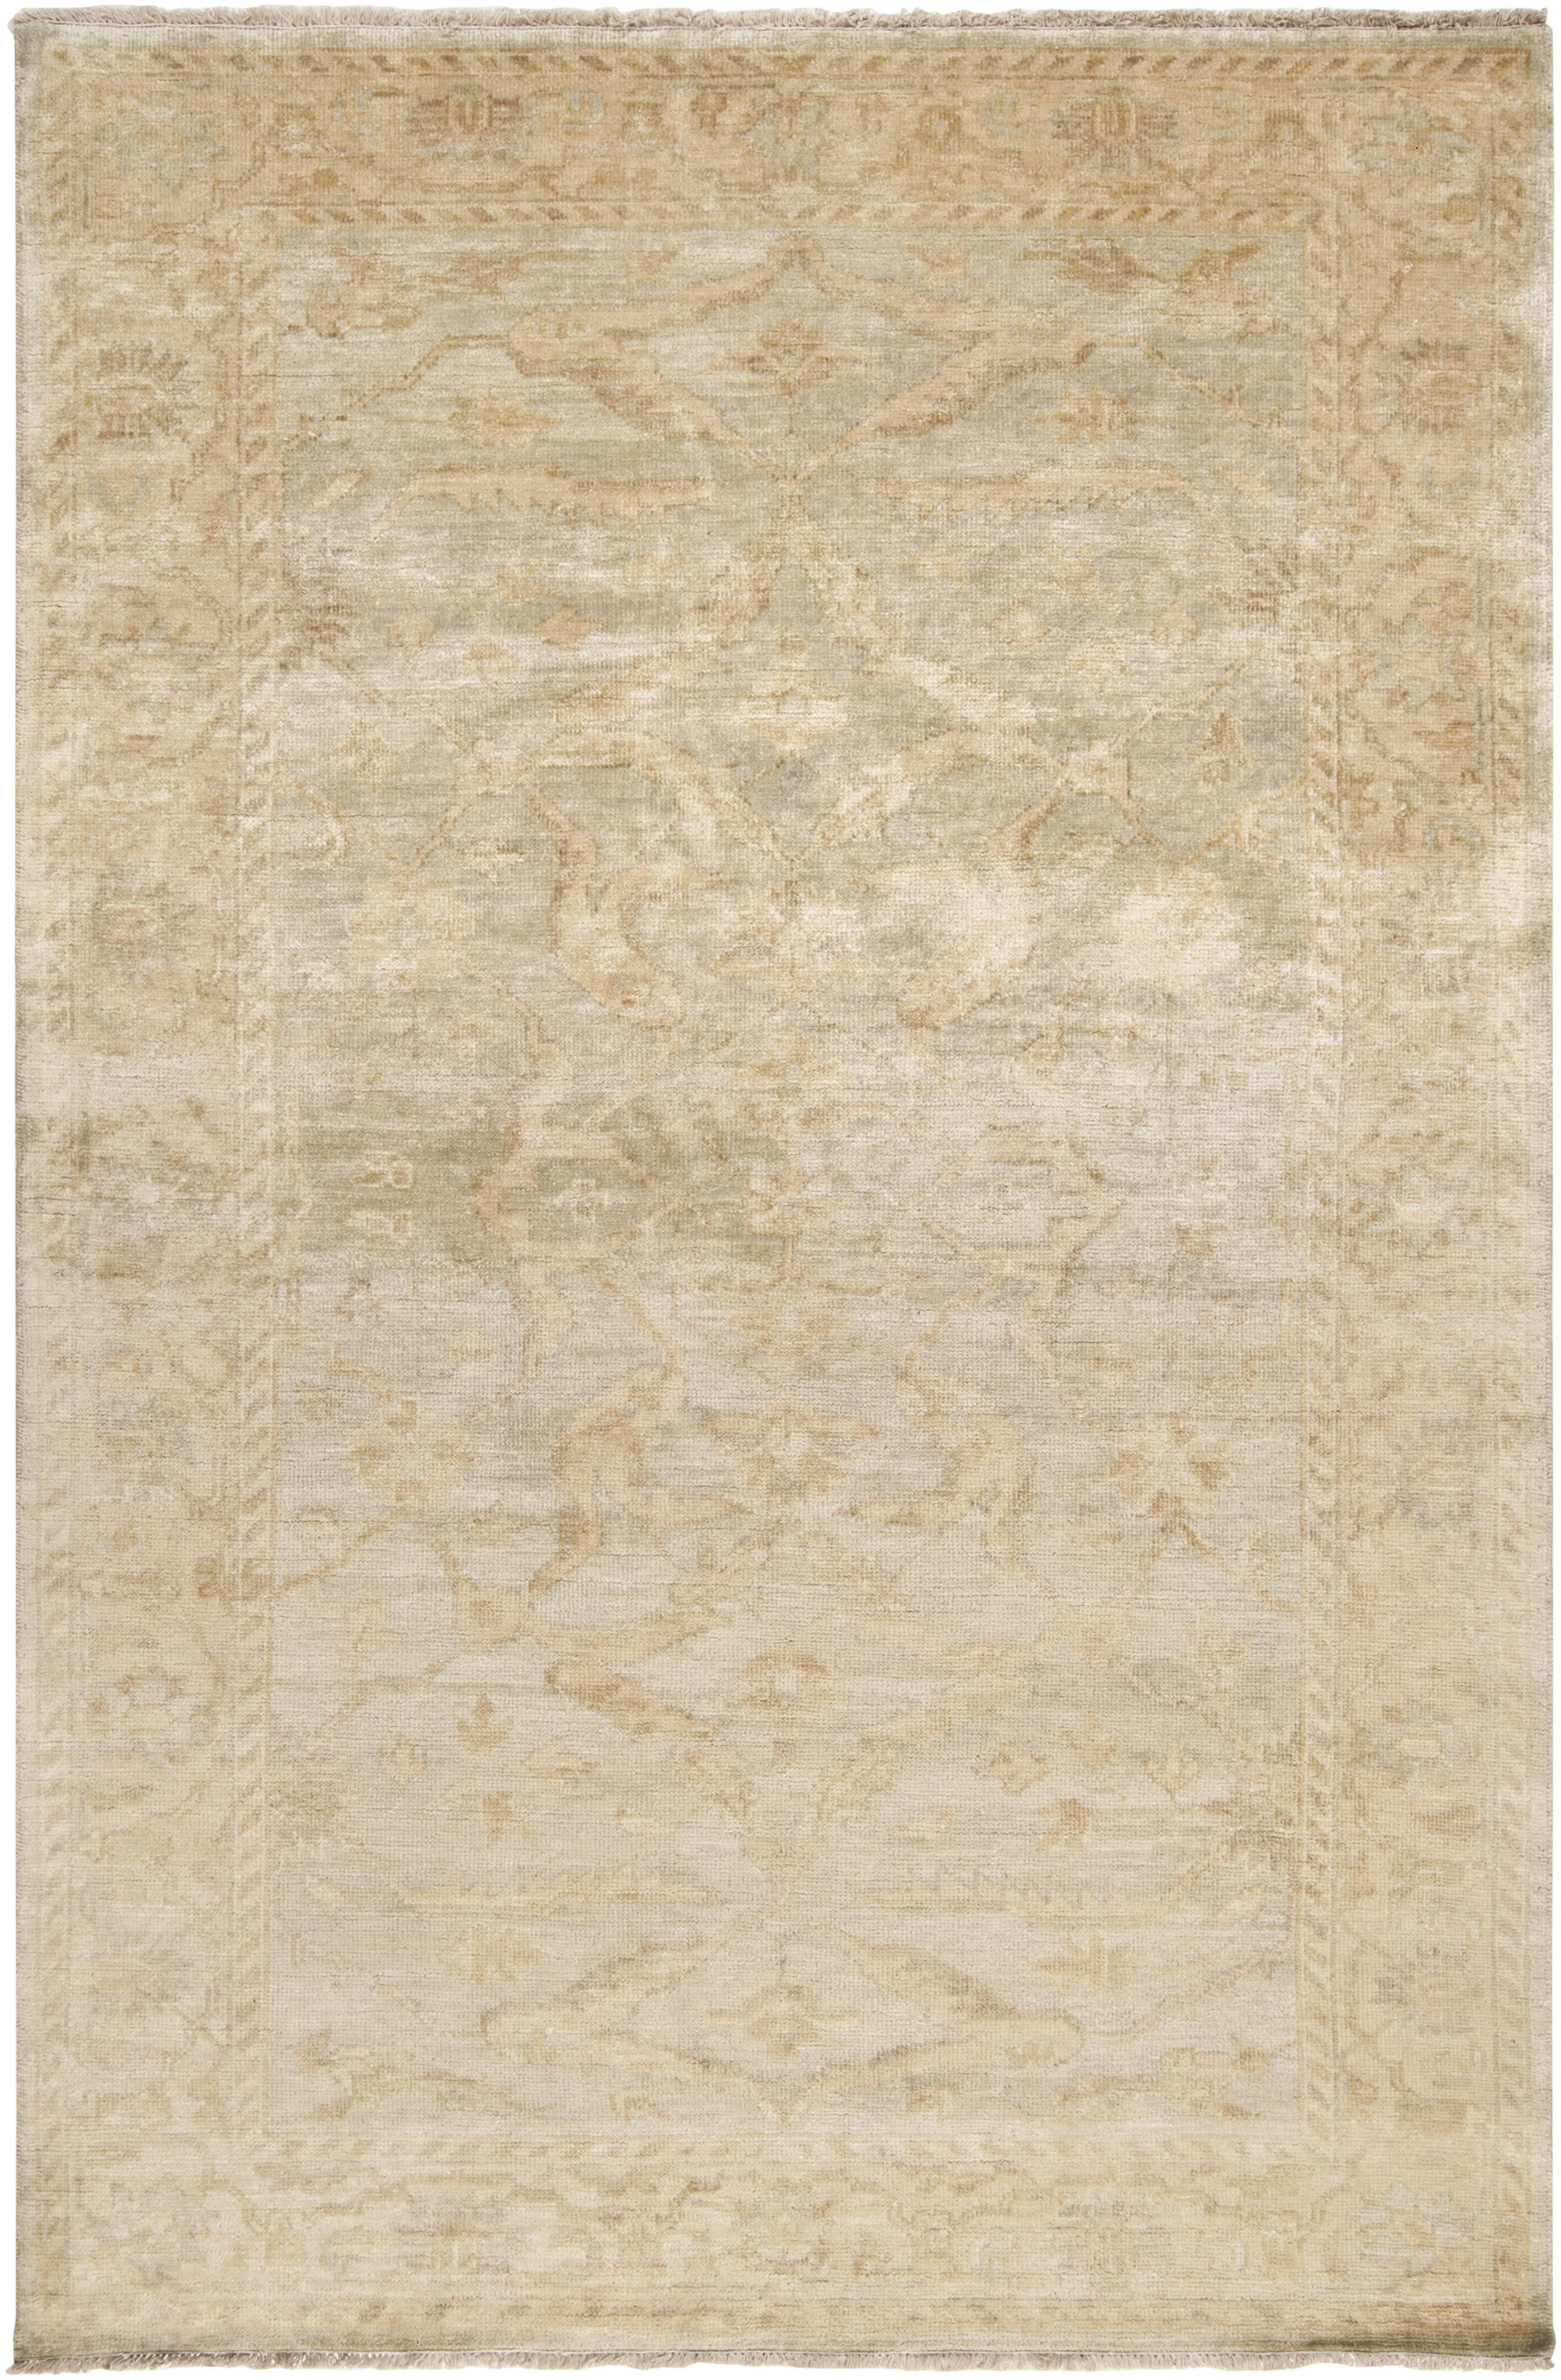 Surya Rugs Hillcrest 9' x 13' - Item Number: HIL9010-913